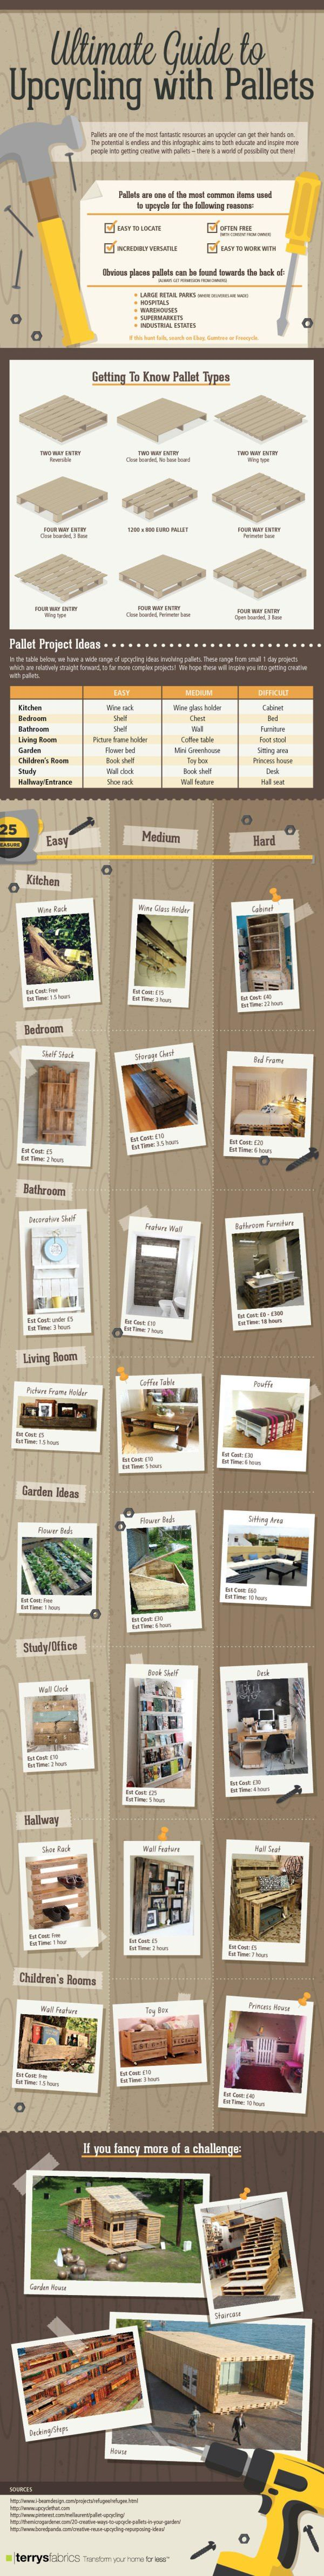 Ultimate Guide to Upcycling with Pallets - some nice easy and medium difficult ideas